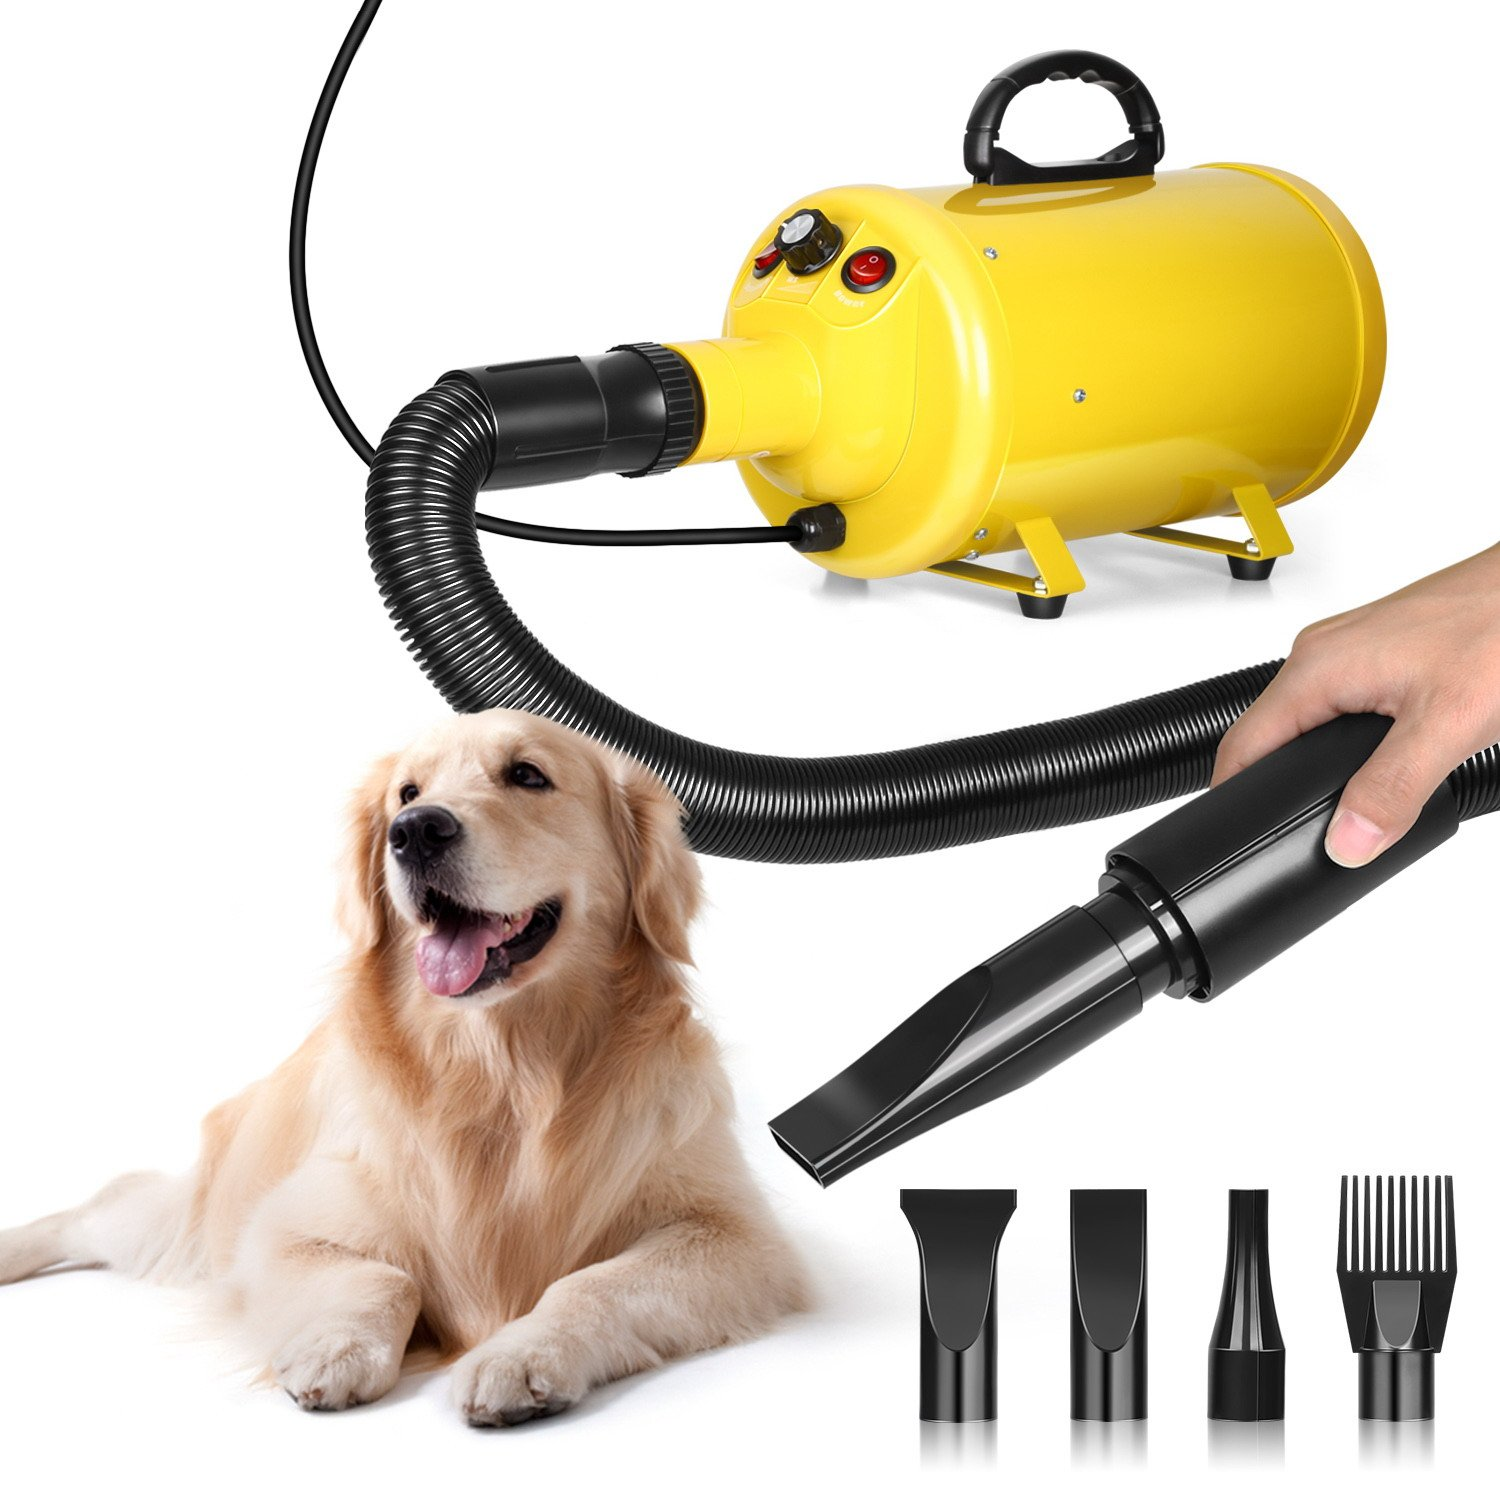 amzdeal Dog Dryer 2800W 3.8HP Pet Blow Dryer Grooming Hair Blower Speed Adjustable with Heater for Dogs Cats 4 Different Nozzles